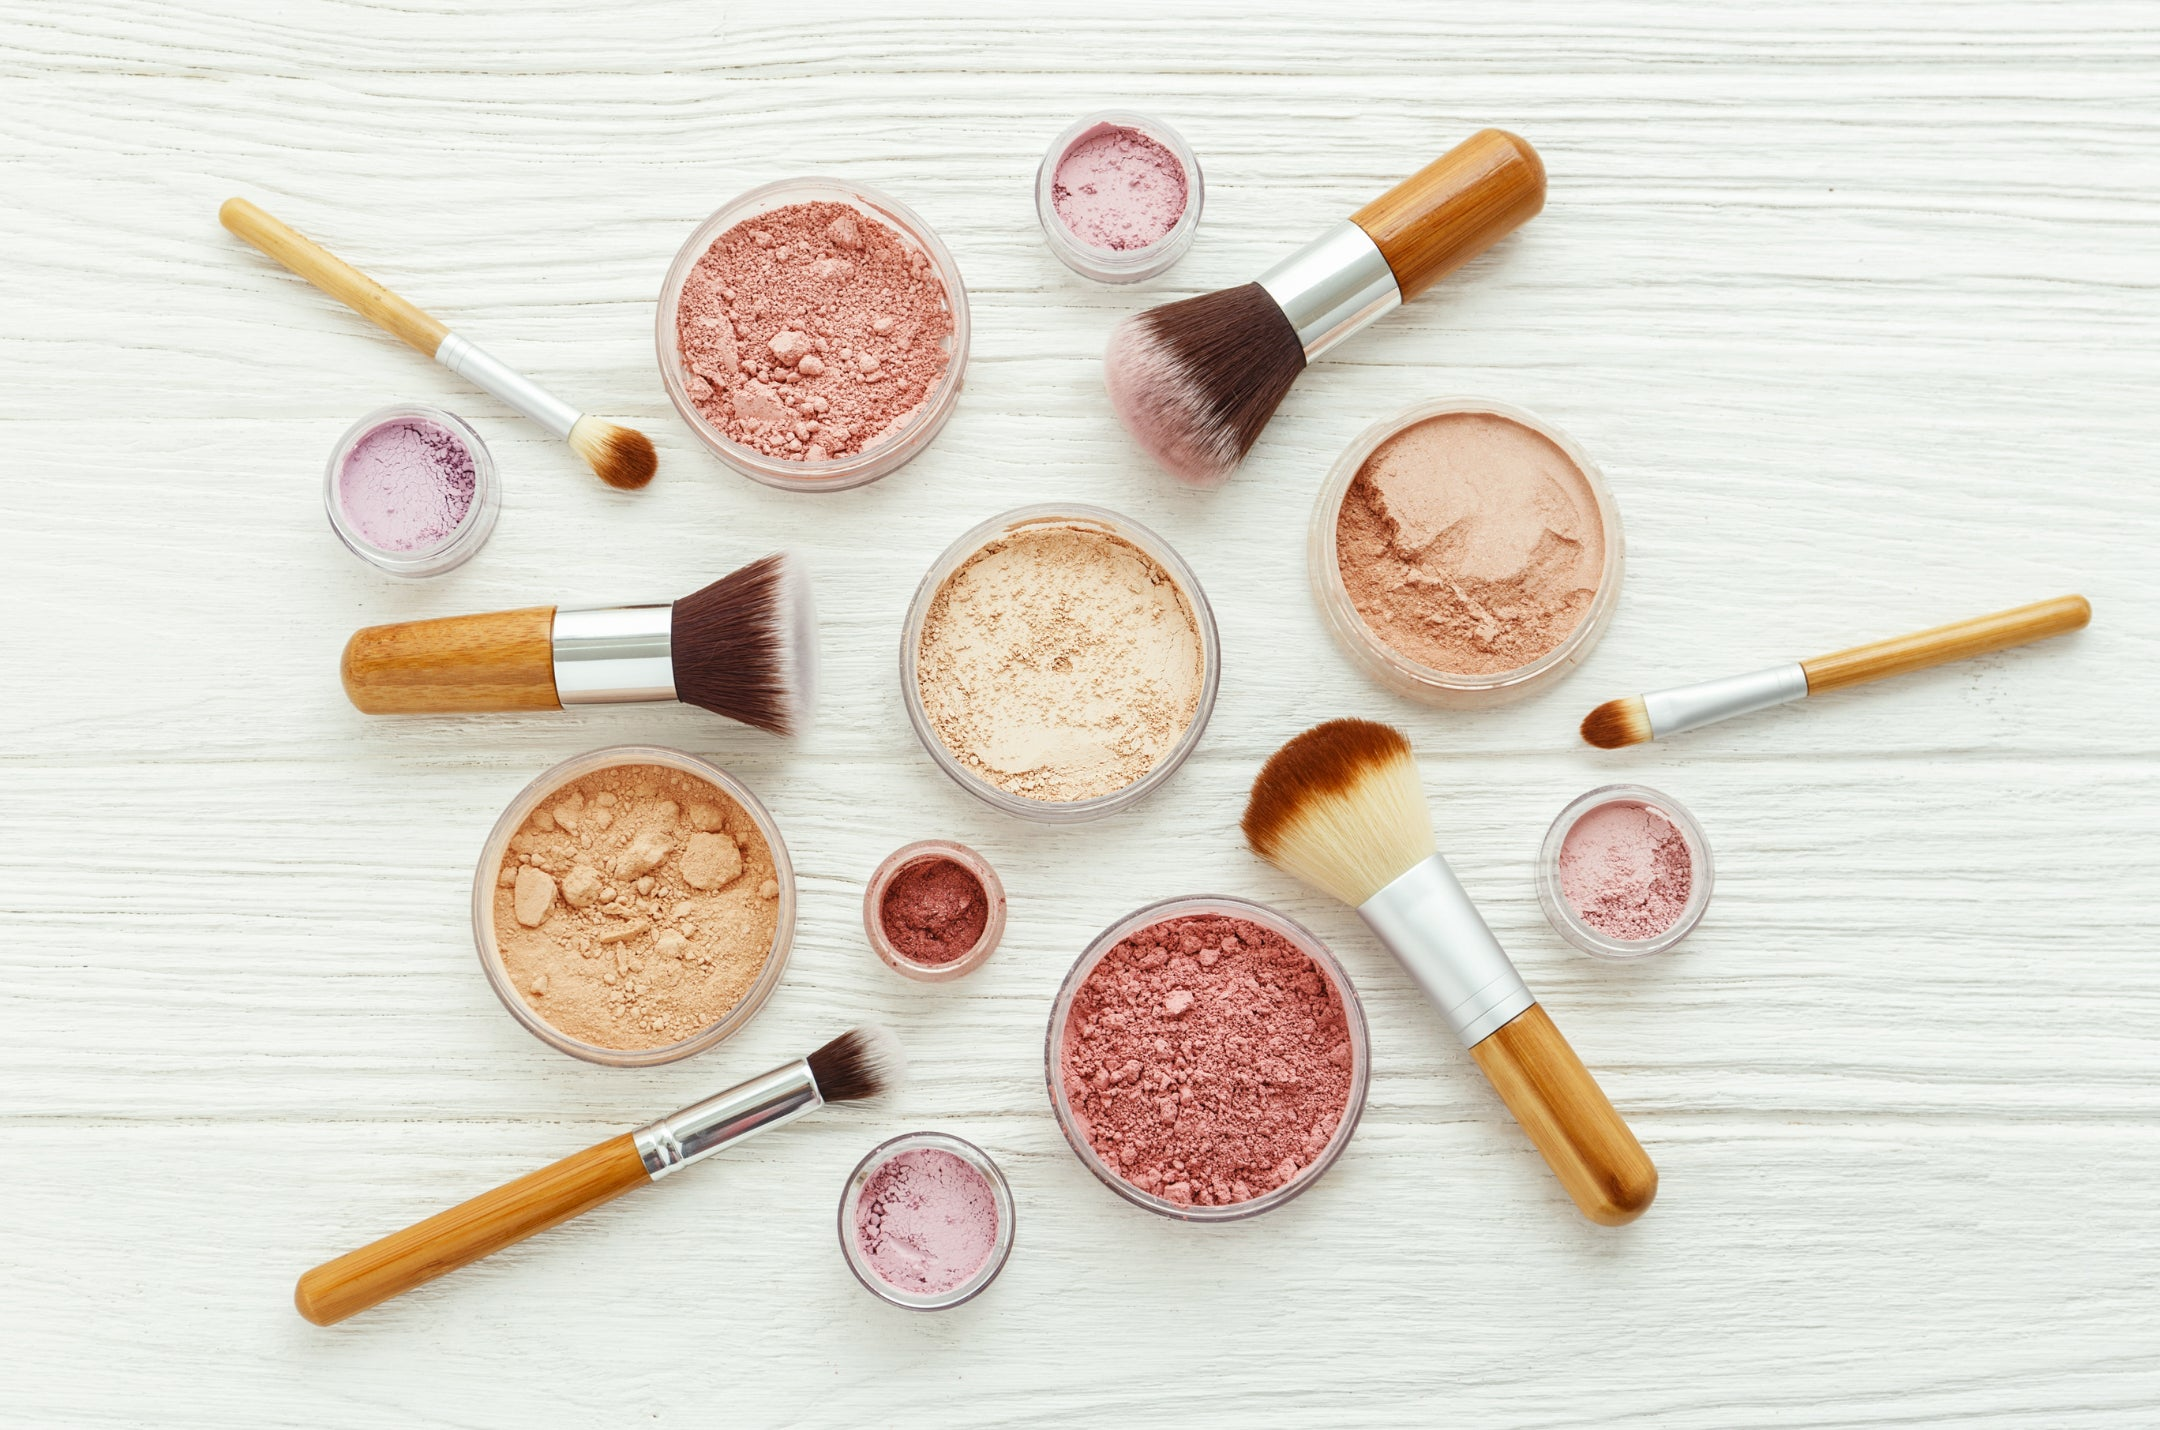 Powdered makeup along with makeup brushes placed on a white wooden surface